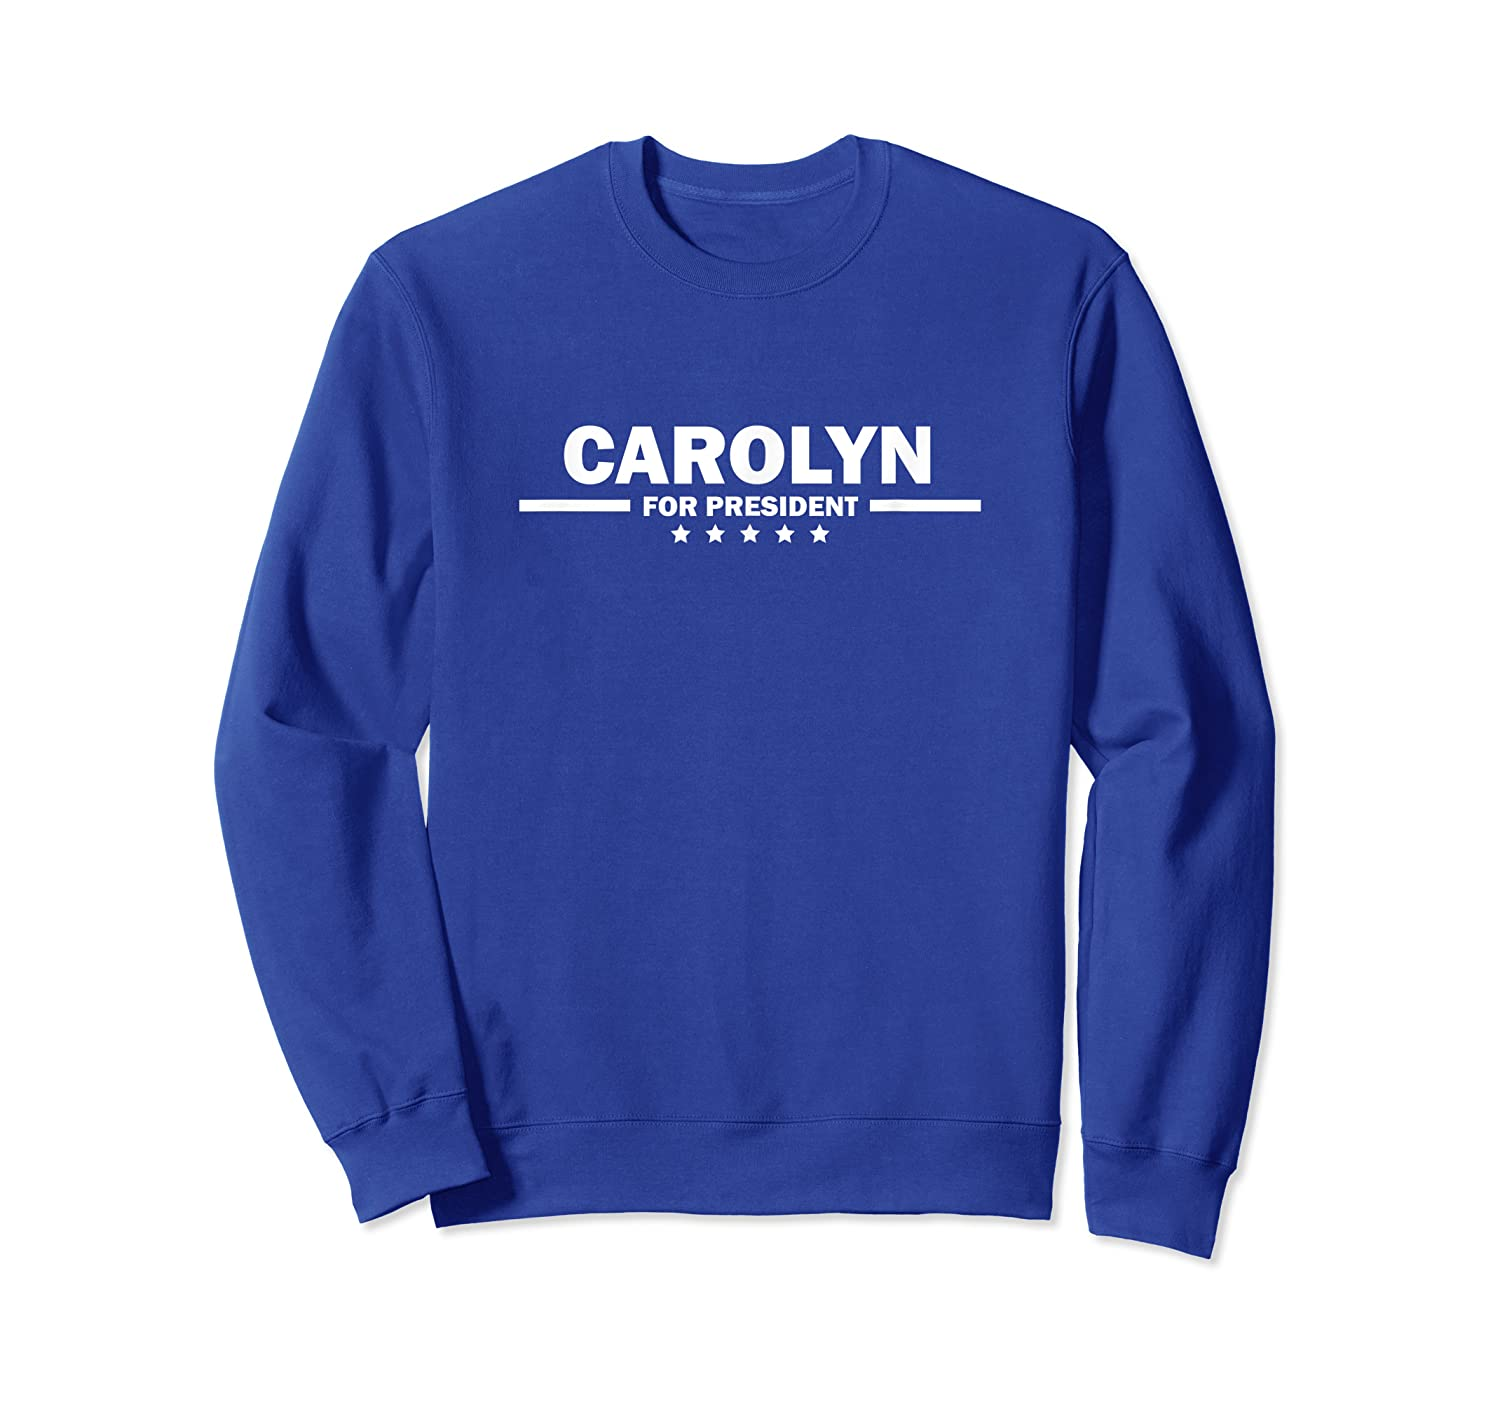 Carolyn For President Personal Fake Campaign Shirts Crewneck Sweater